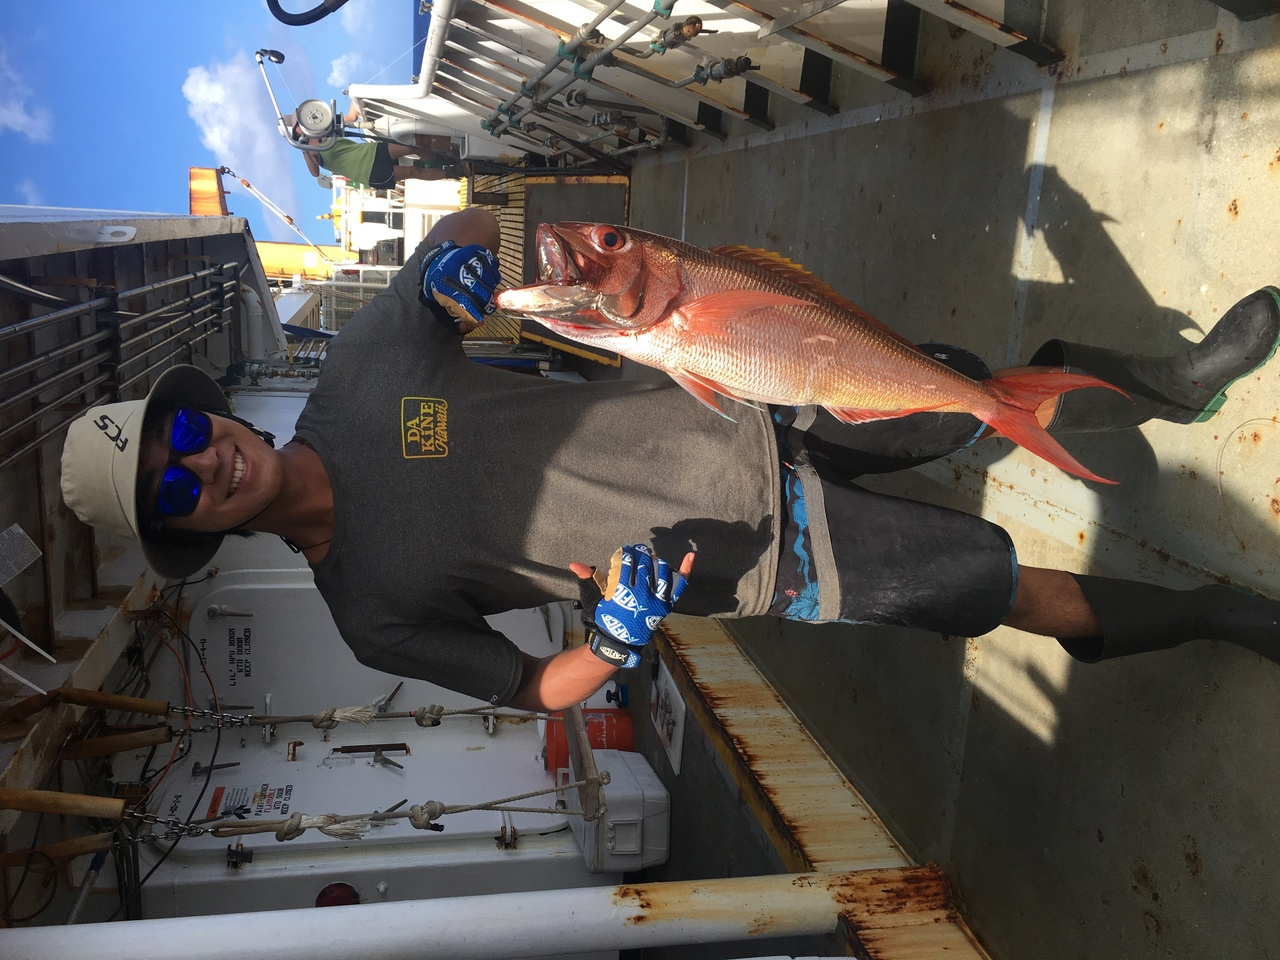 Max holds up one of the beautiful and vibrantly colored lehi that he caught to study deepwater fishes.